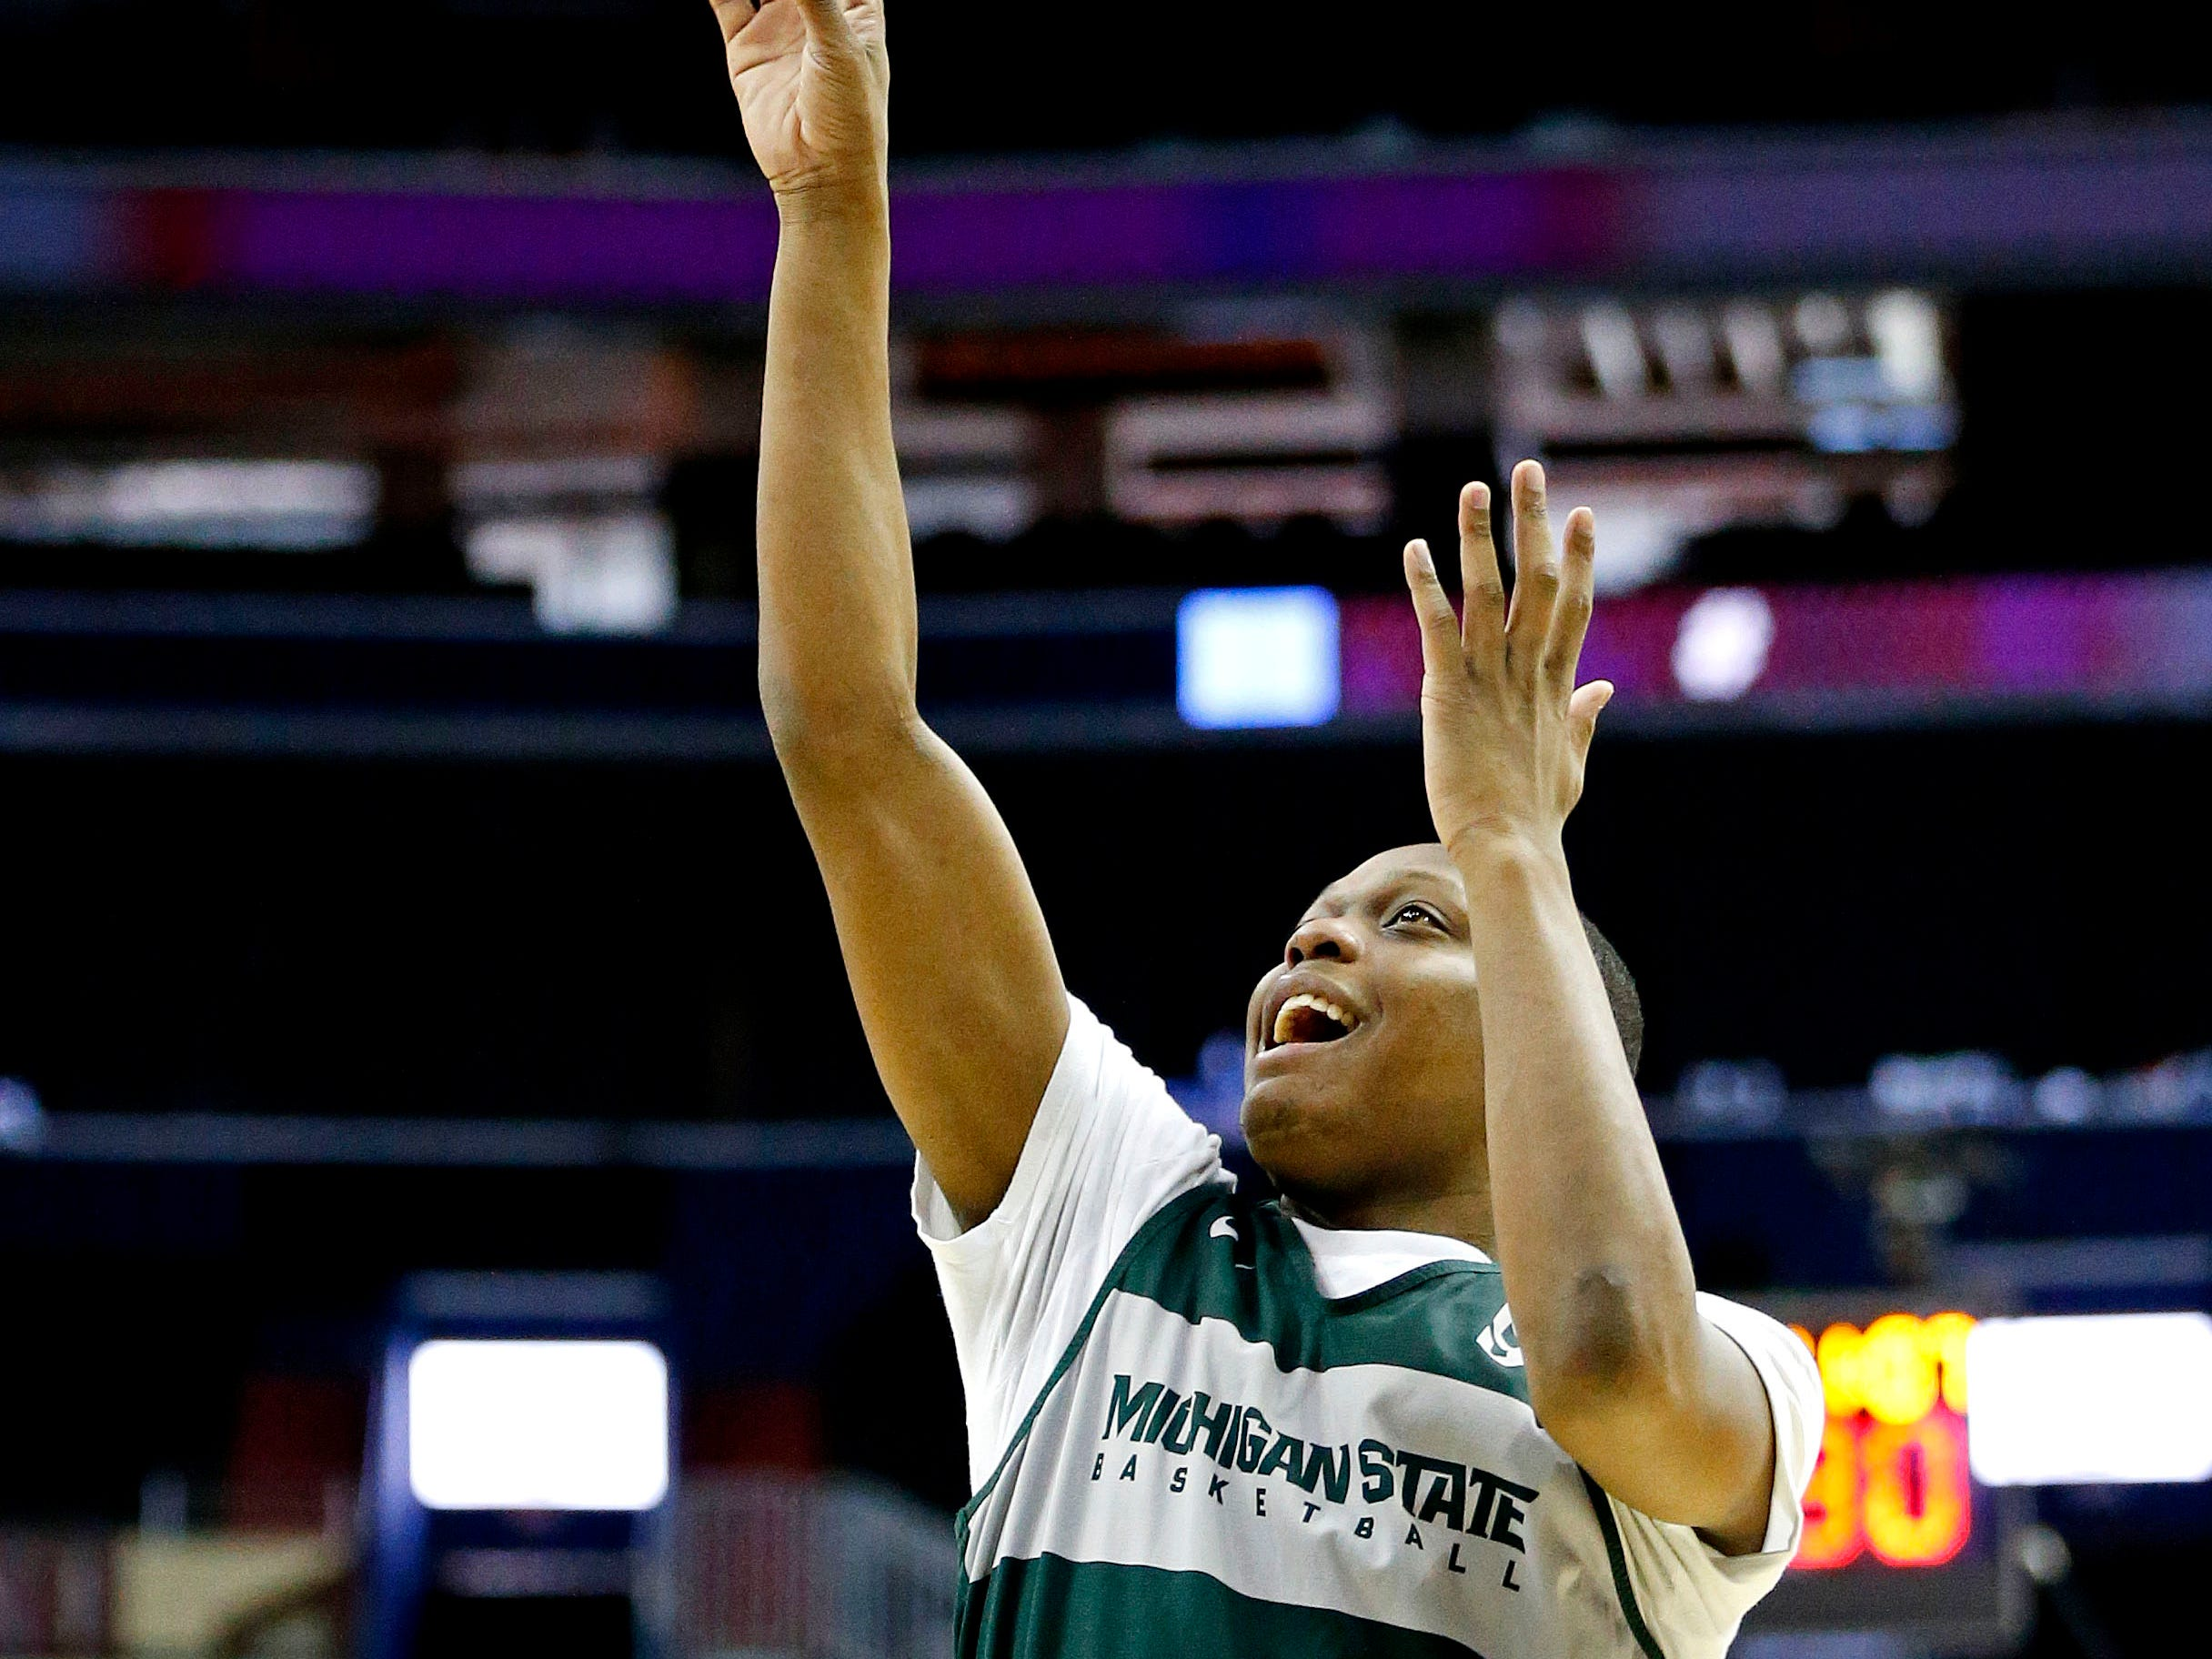 Mar 28, 2019; Washington, DC, USA; Michigan State Spartans guard Cassius Winston (5) shoots the ball during practice for the east regional of the 2019 NCAA Tournament at Capital One Arena. Mandatory Credit: Amber Searls-USA TODAY Sports